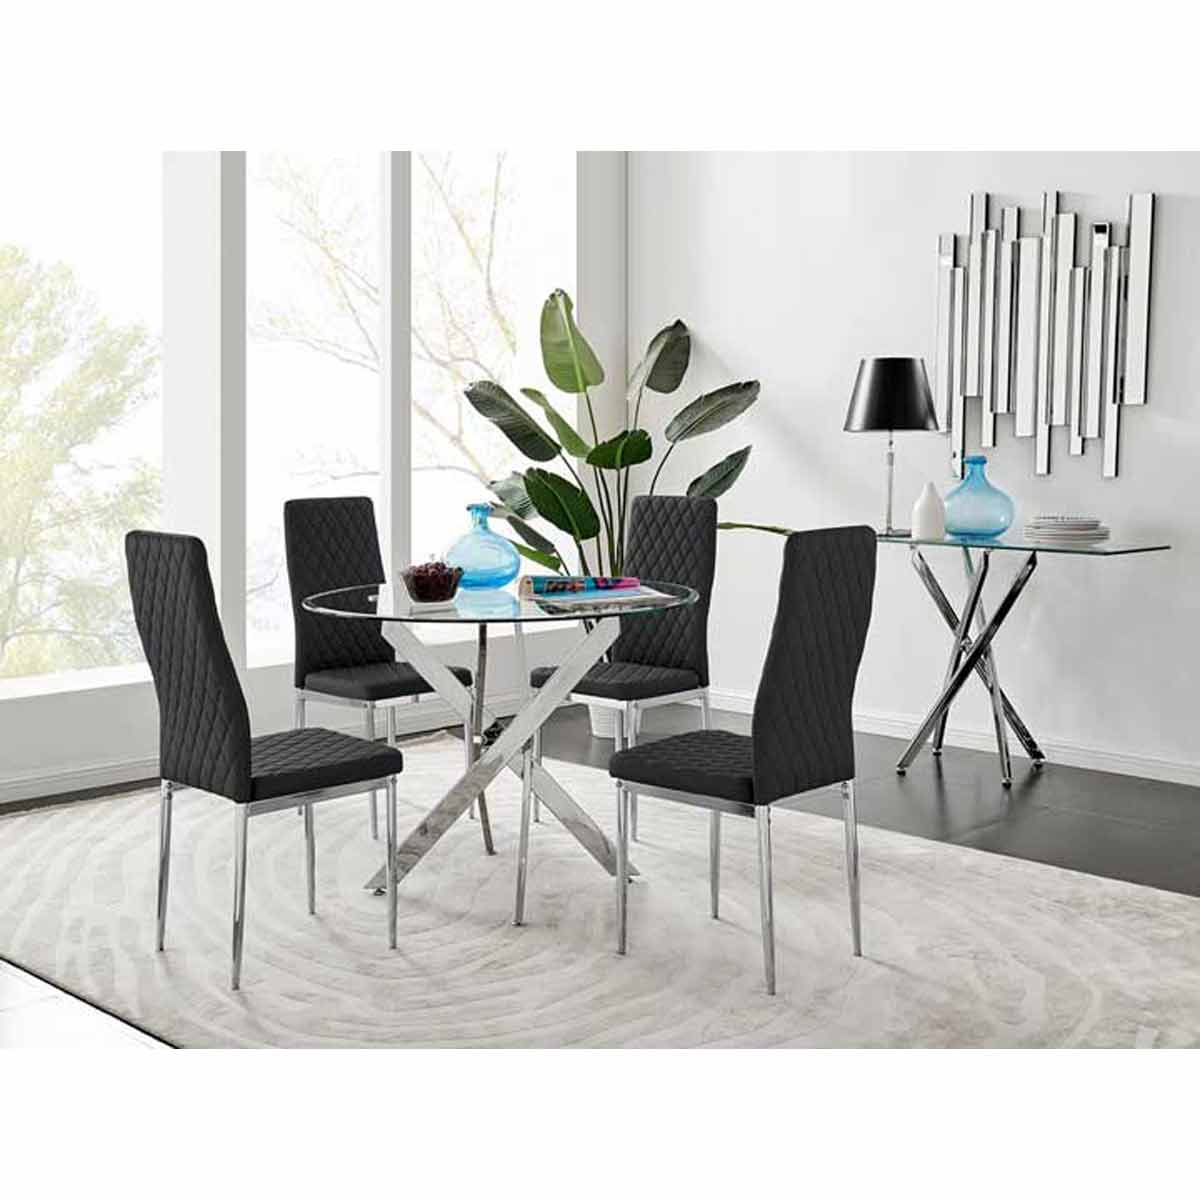 Furniture Box Novara Round Chrome Metal And Glass Dining Table And 4 Black Milan Dining Chairs Set